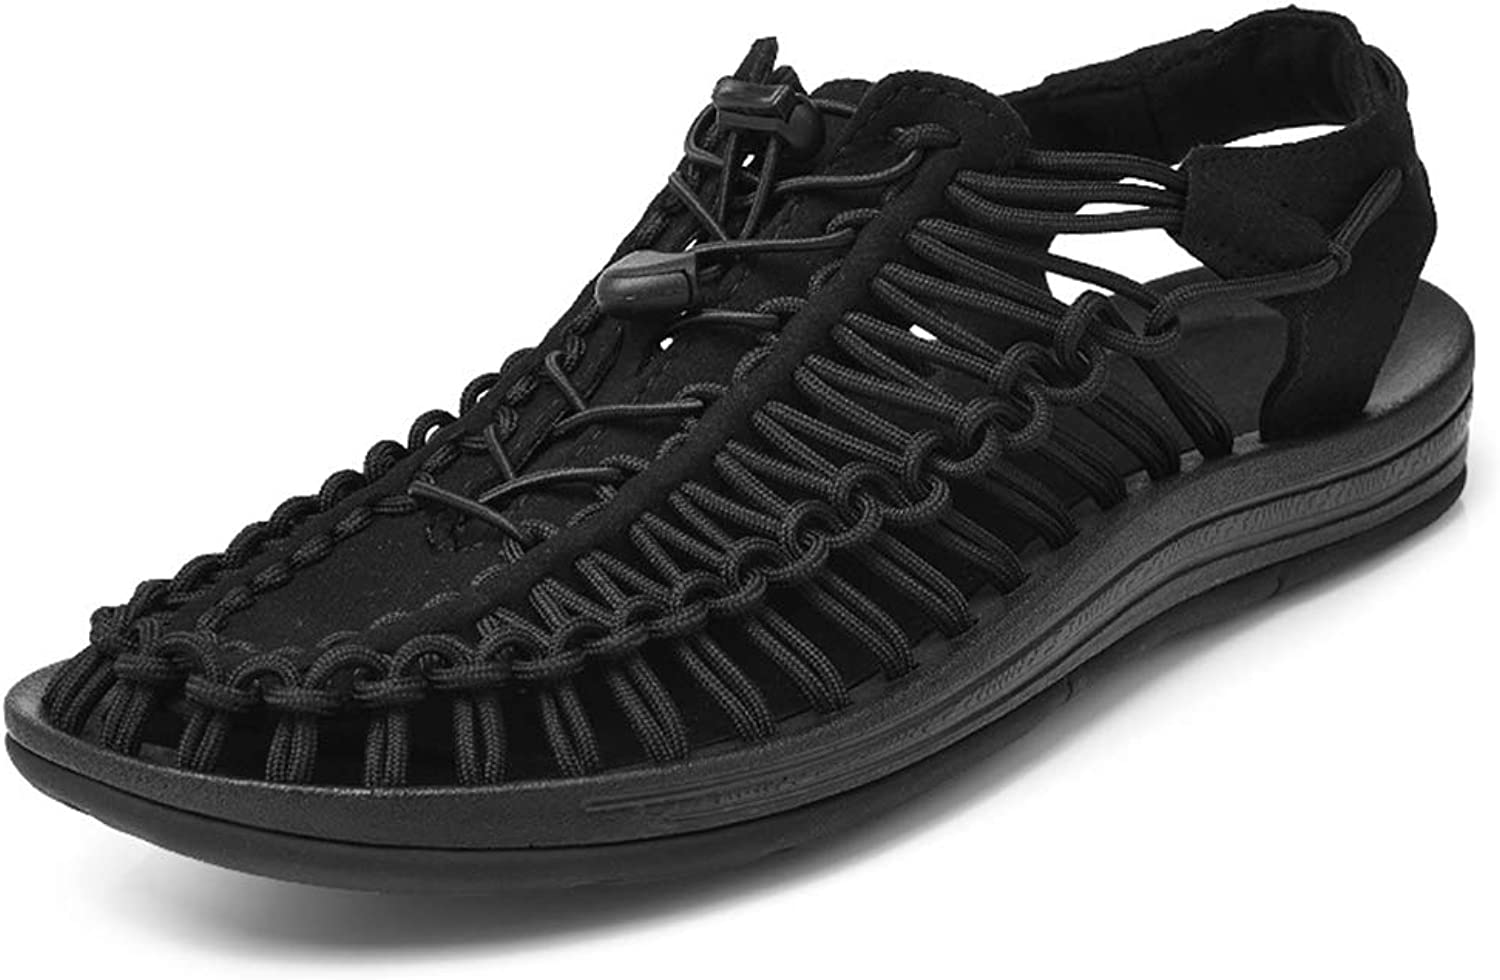 Qiusa Men Outdoor Braided Rope Sandals Hollow out Soft Sole Closed Toe Men shoes (color   Black, Size   UK 5.5)